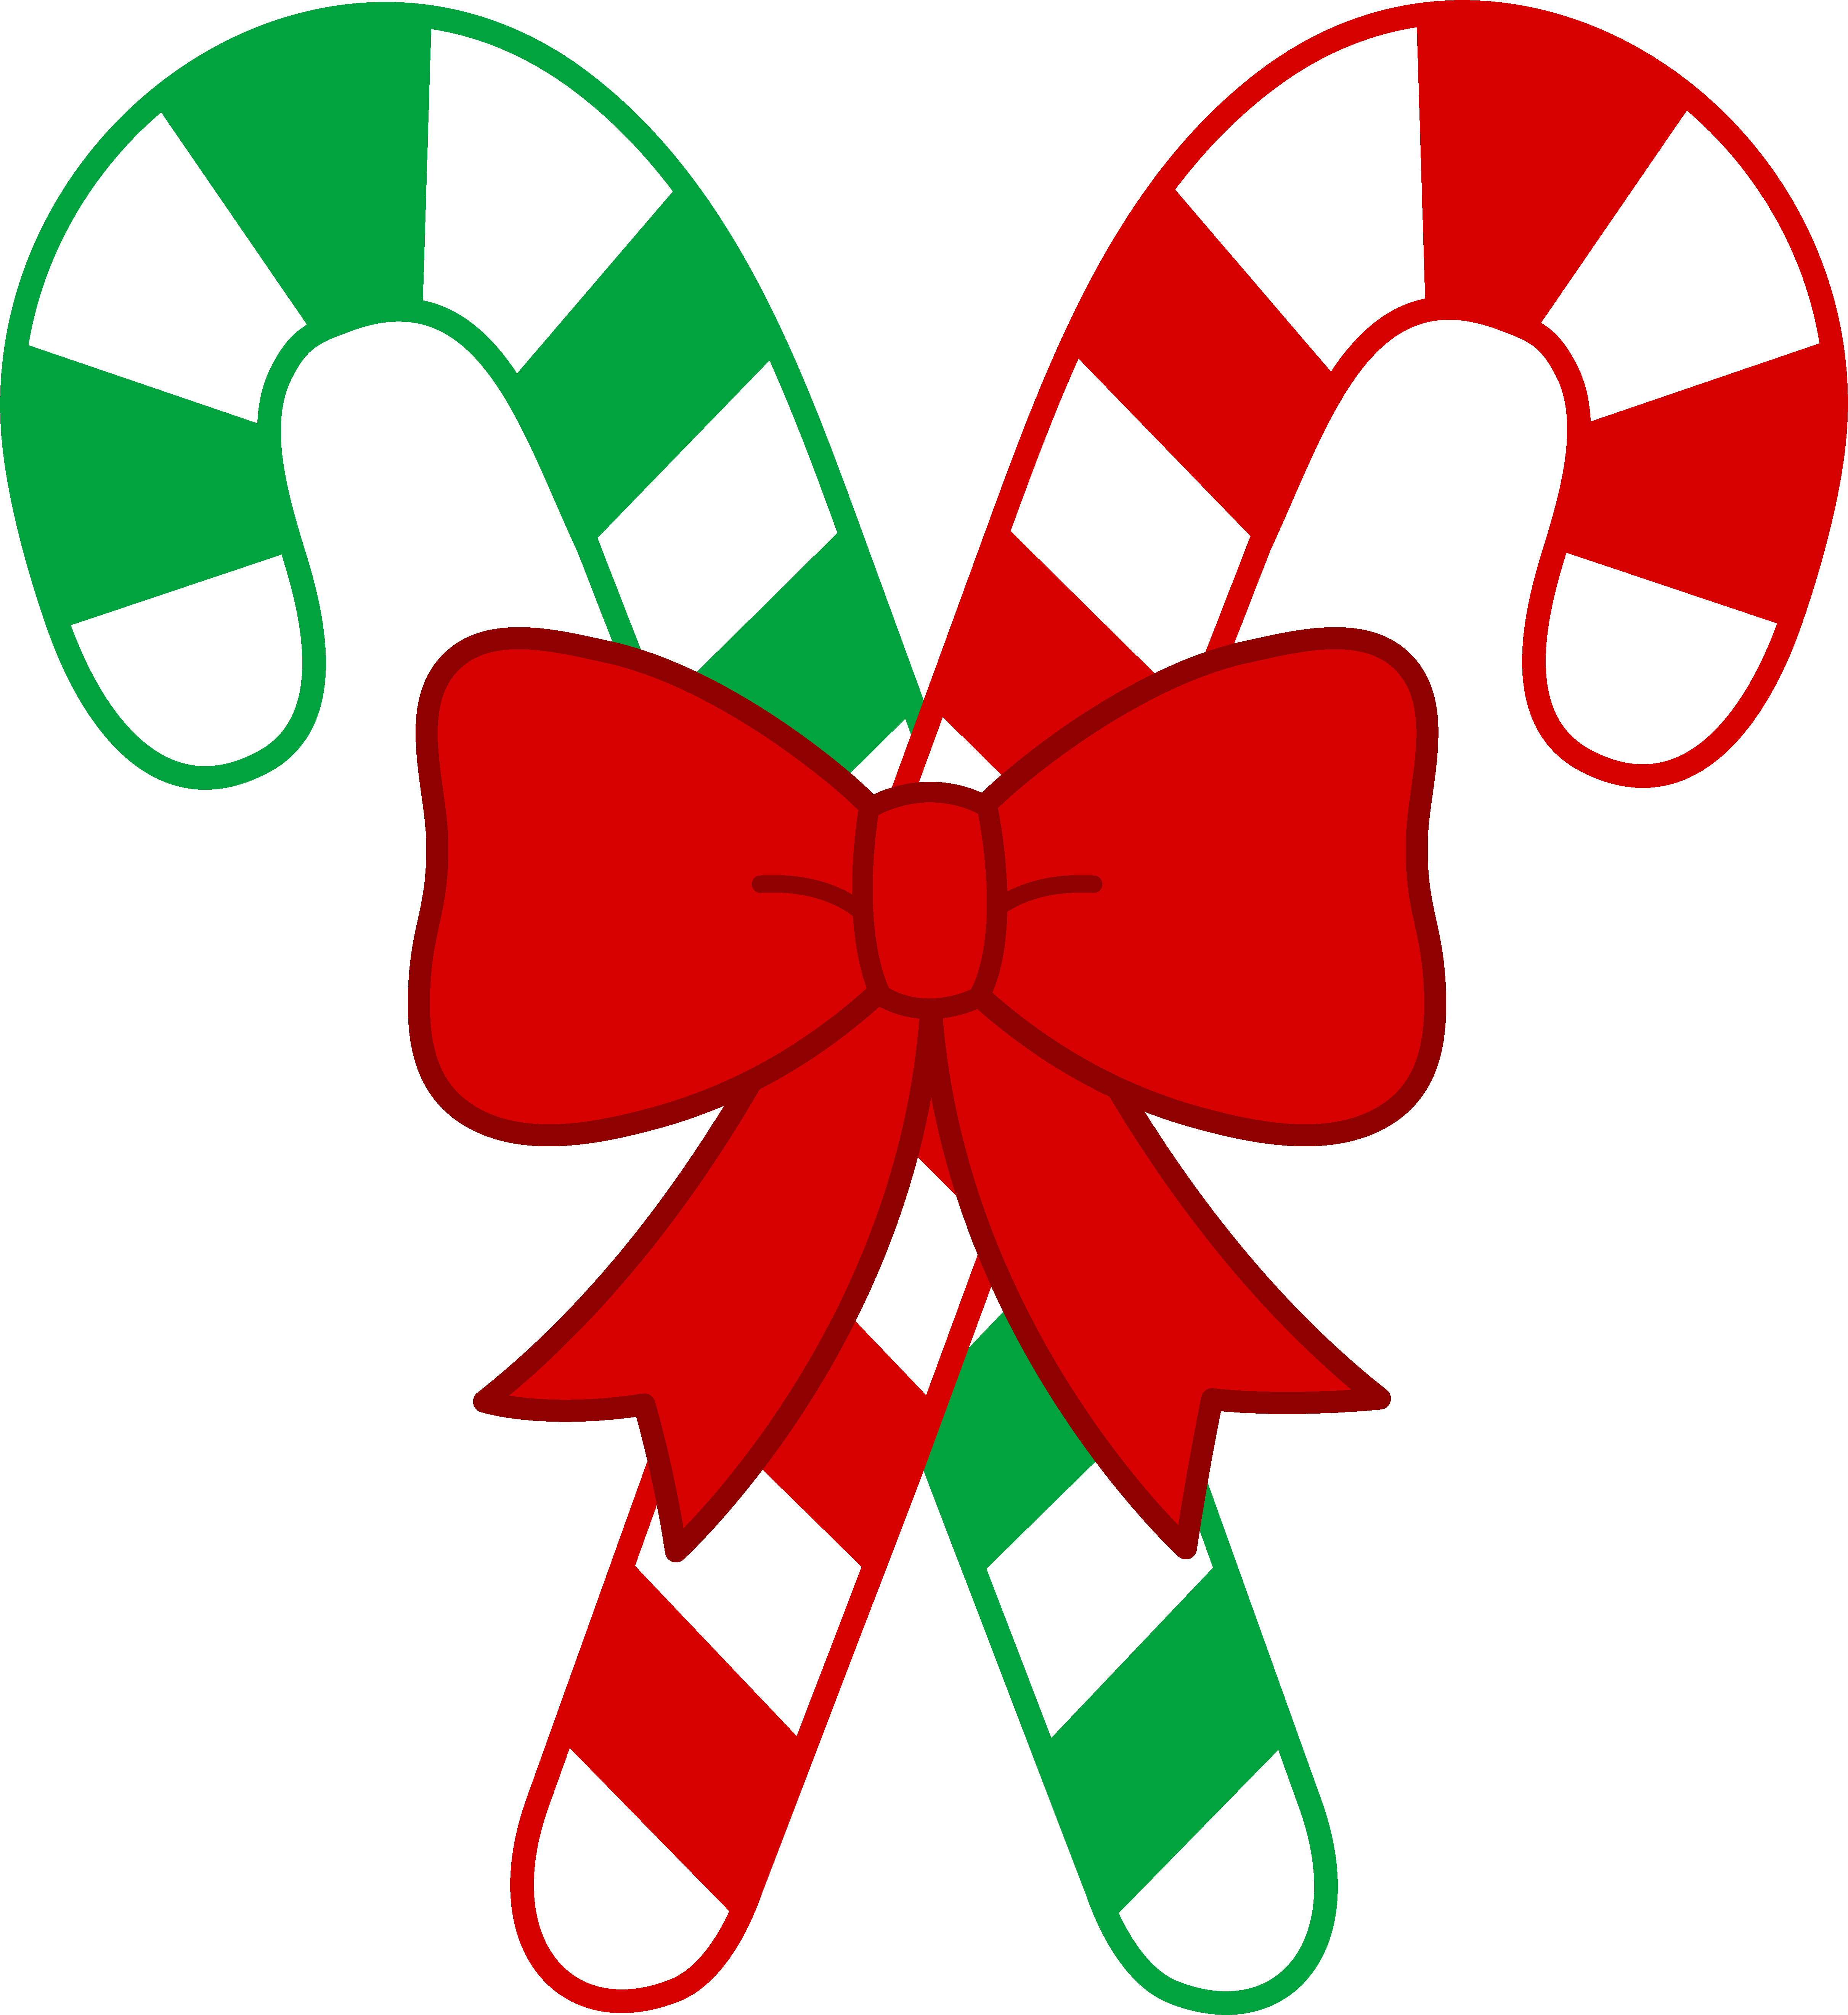 Candy Canes Tied With Bow Christmas Clipart Candy Cane Image Christmas Candy Cane